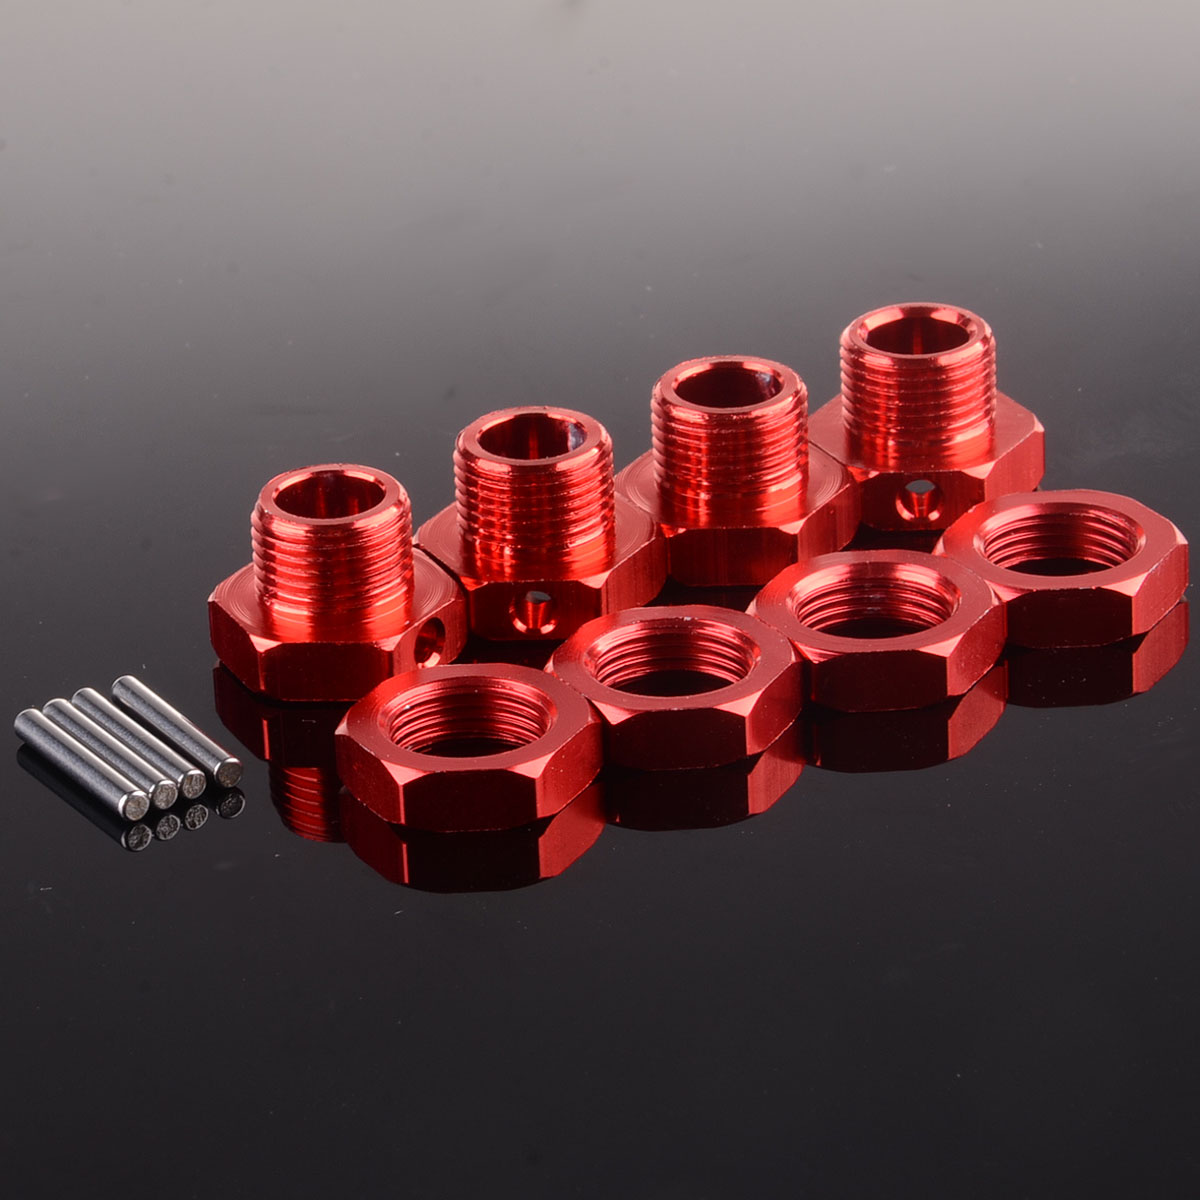 Car Wheel Hex Nuts Pin Replacement Accessories Spare 80122 RC 17mm 1//8 81212